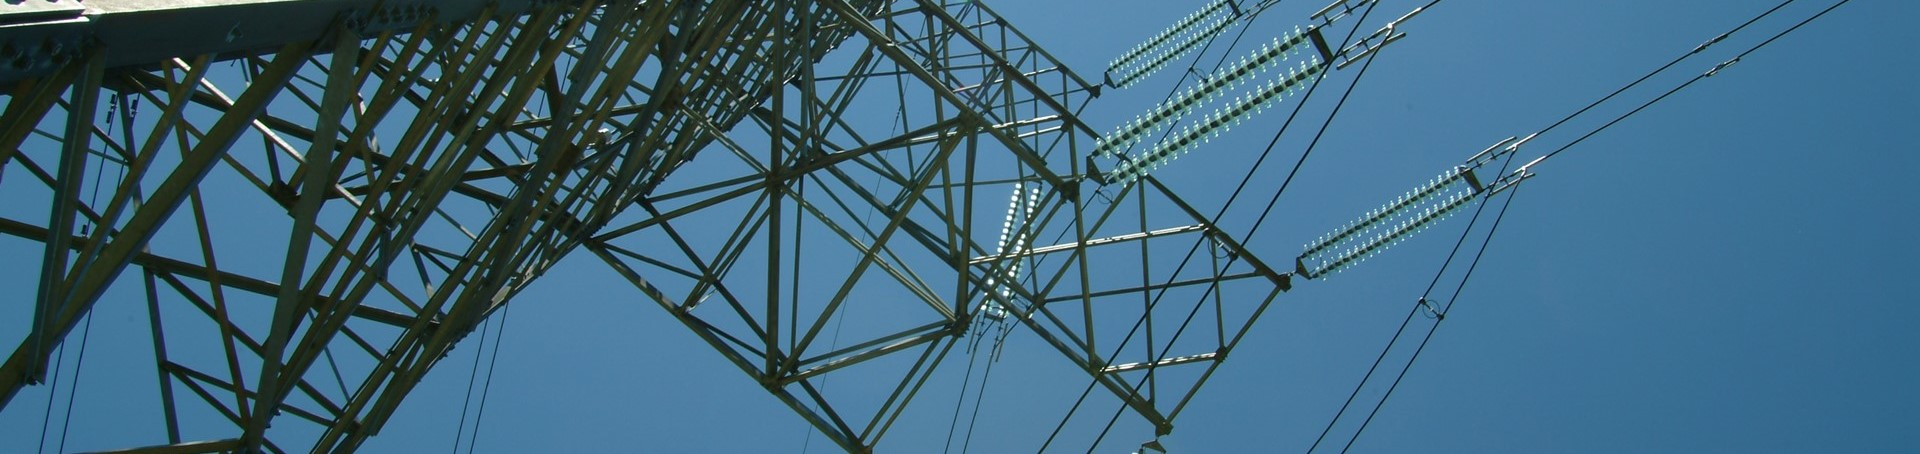 Corrosion and Protection of Transmission Towers